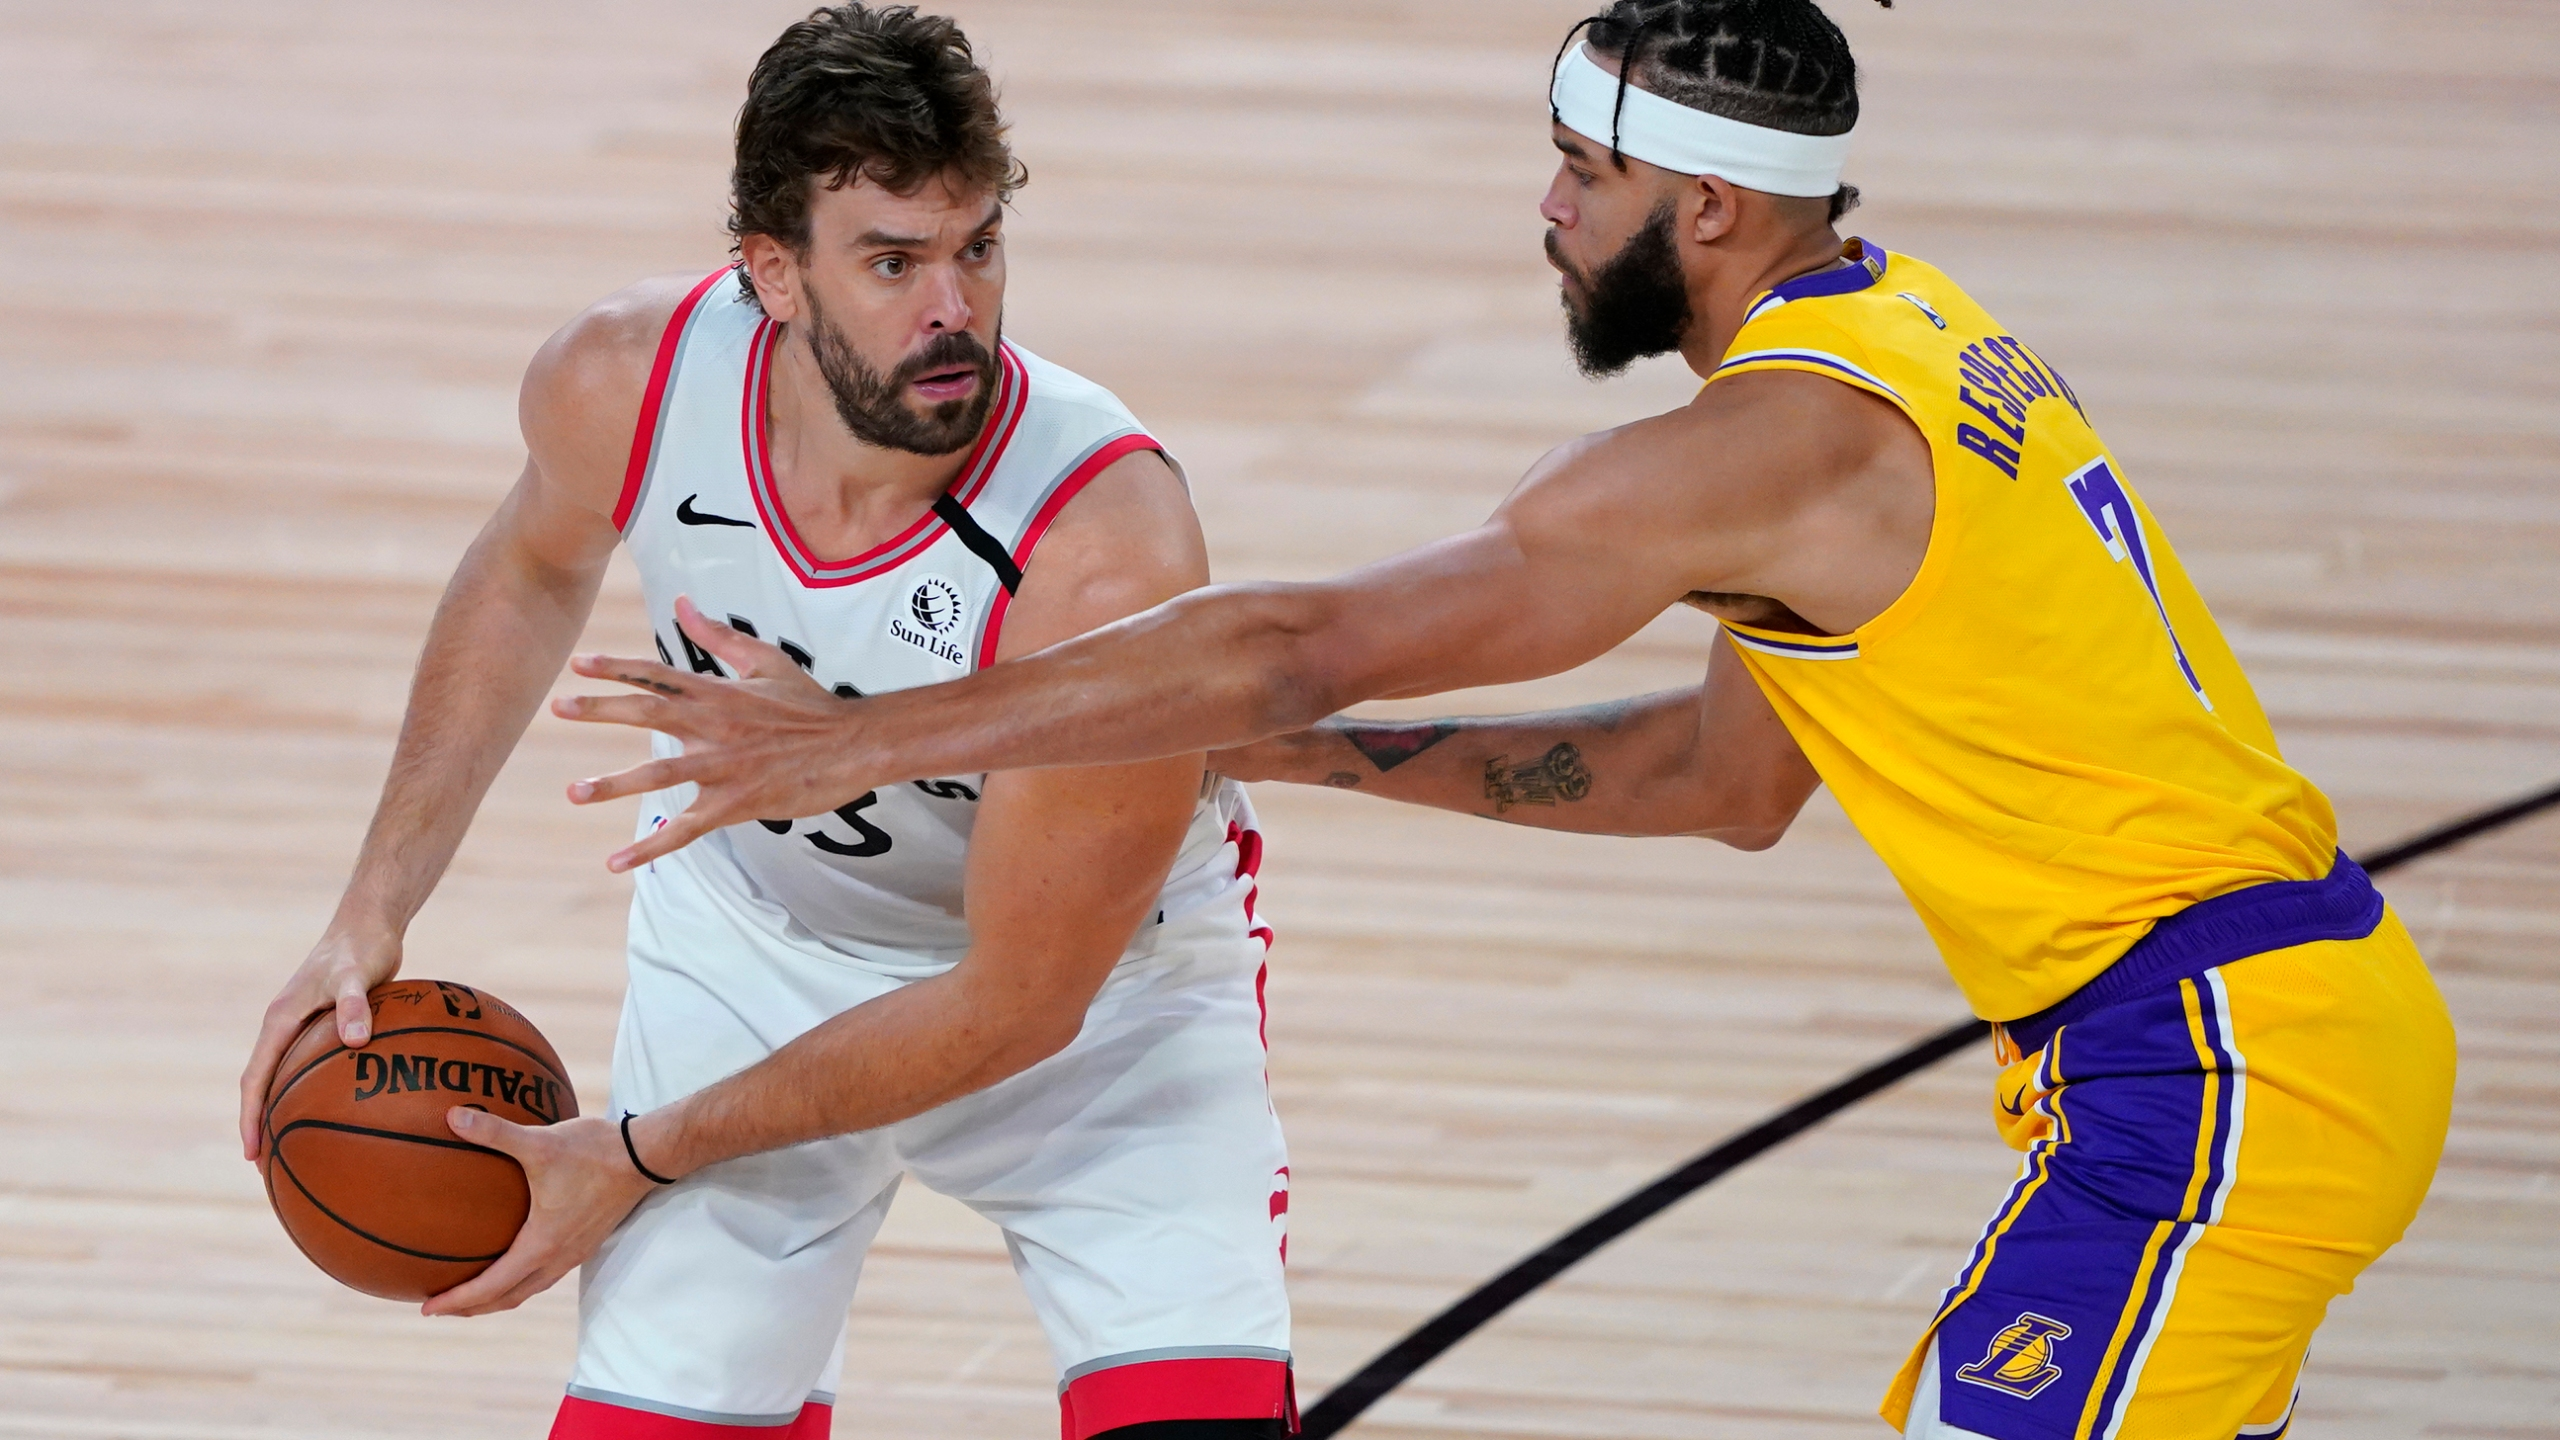 Marc Gasol holds the ball against JaVale McGee during the second half of an NBA basketball game between the Toronto Raptors and the L.A. Lakers at The Arena in the ESPN Wide World Of Sports Complex on Aug. 1, 2020 in Lake Buena Vista, Florida. (Ashley Landis - Pool/Getty Images)